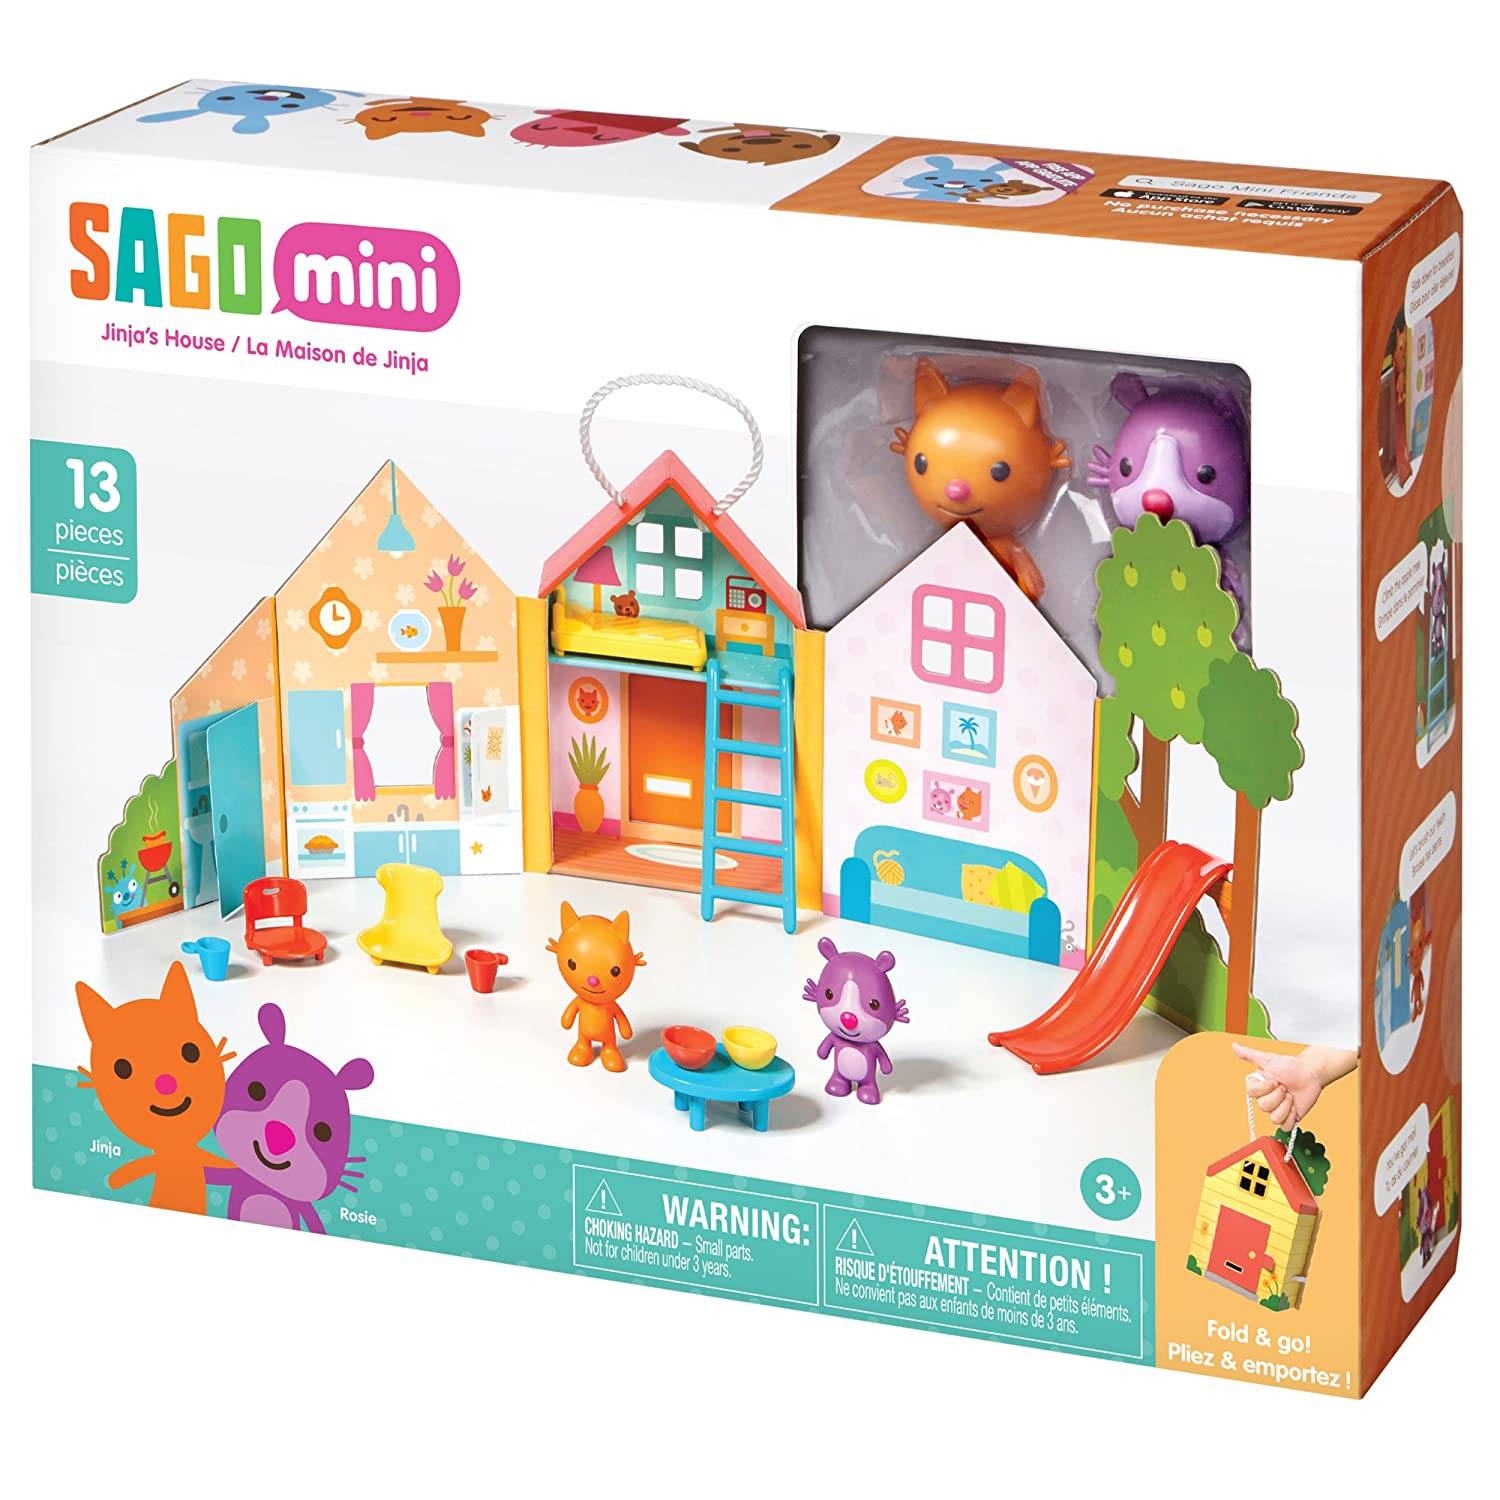 Sago Mini - Portable Playset: Jinjas House by Sago Mini: Amazon.es: Juguetes y juegos